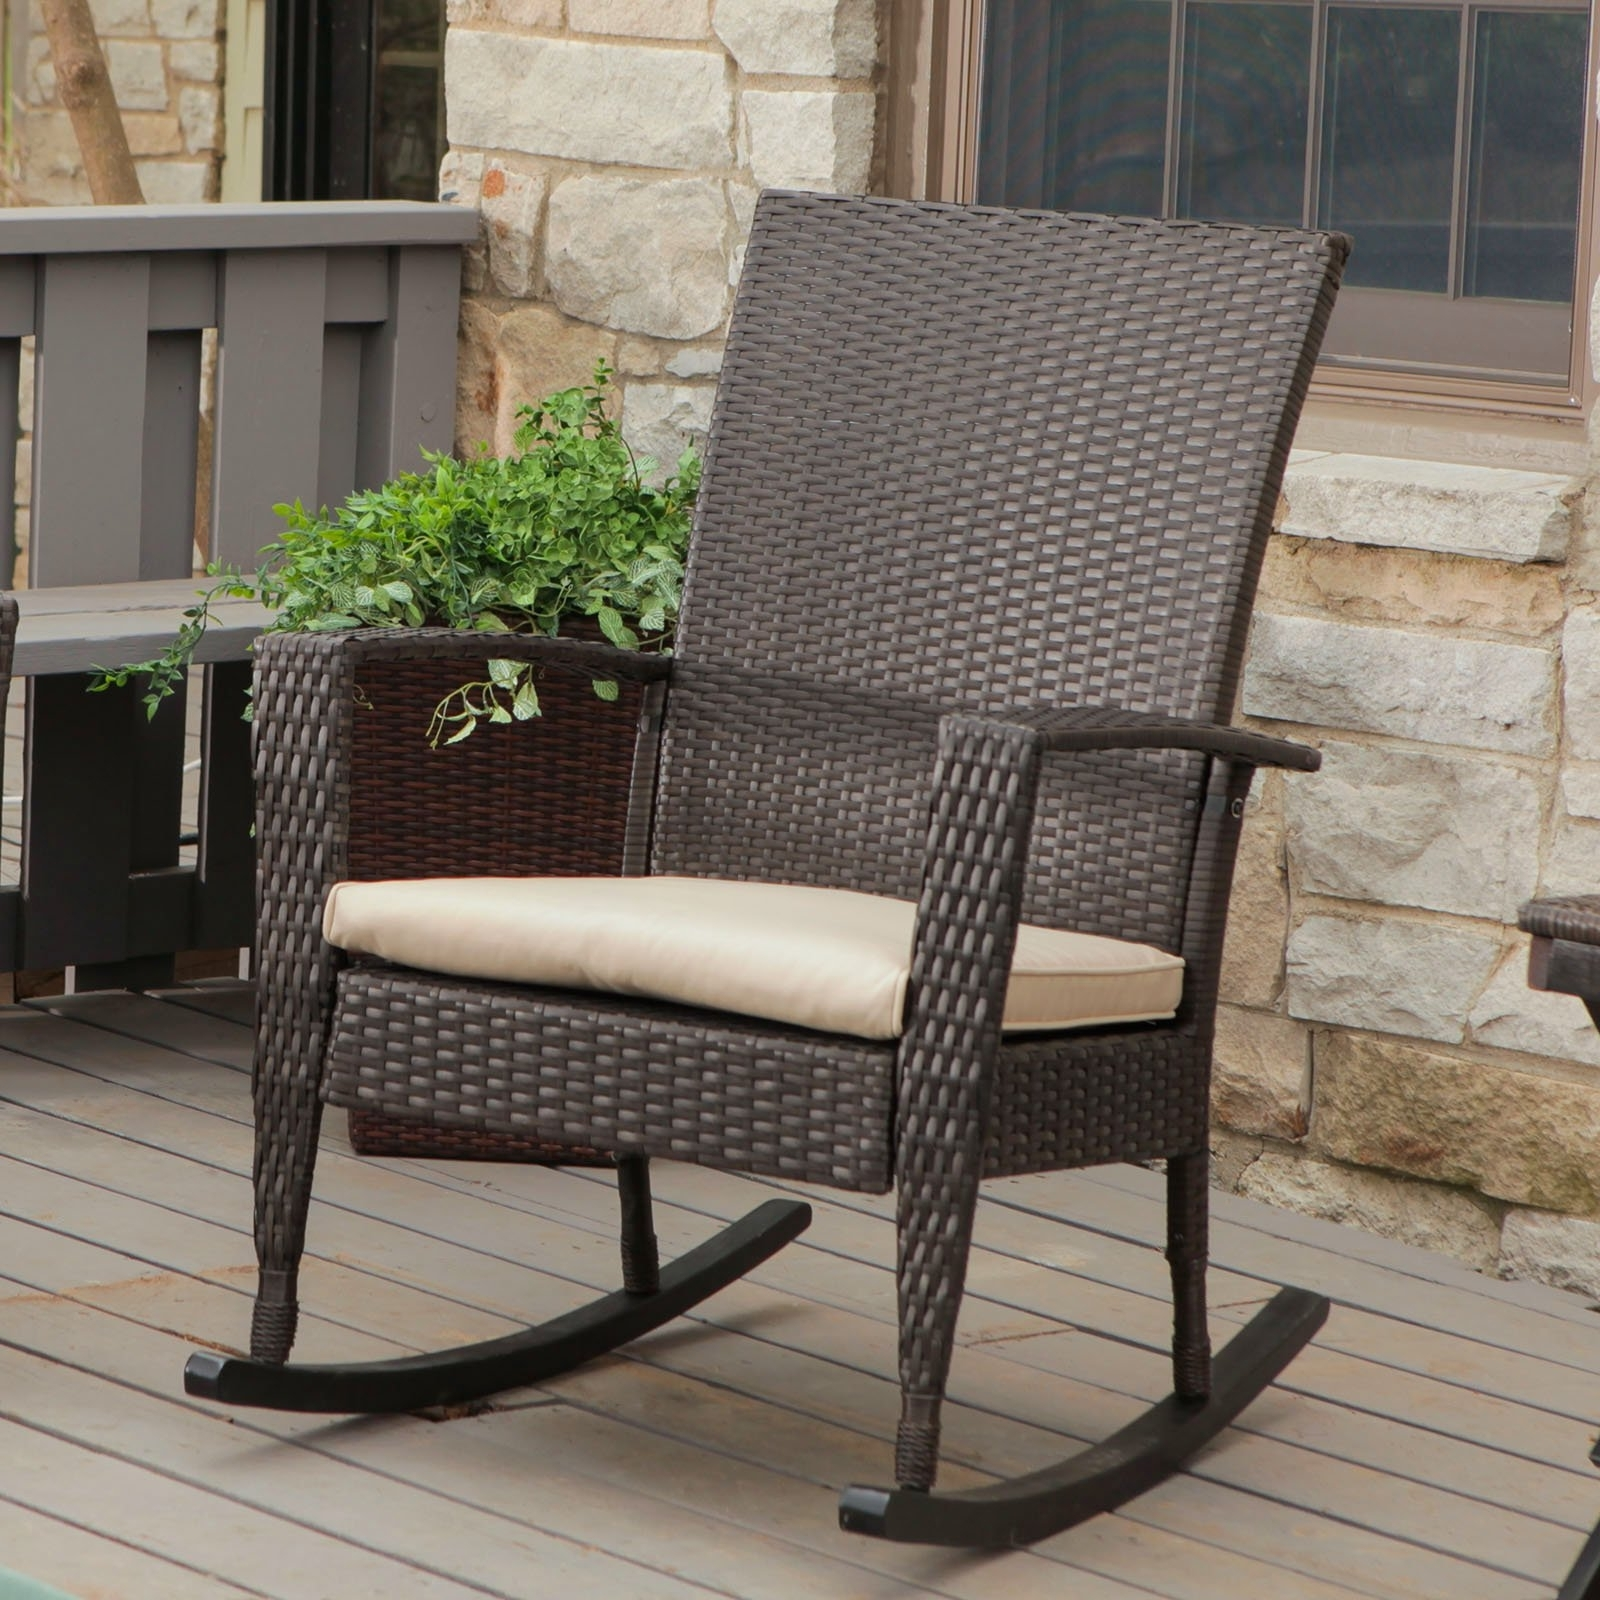 Most Recent Oversized Patio Rocking Chairs Intended For A Guide To Find The Right Outdoor Rocking Chair For Your House (View 13 of 15)